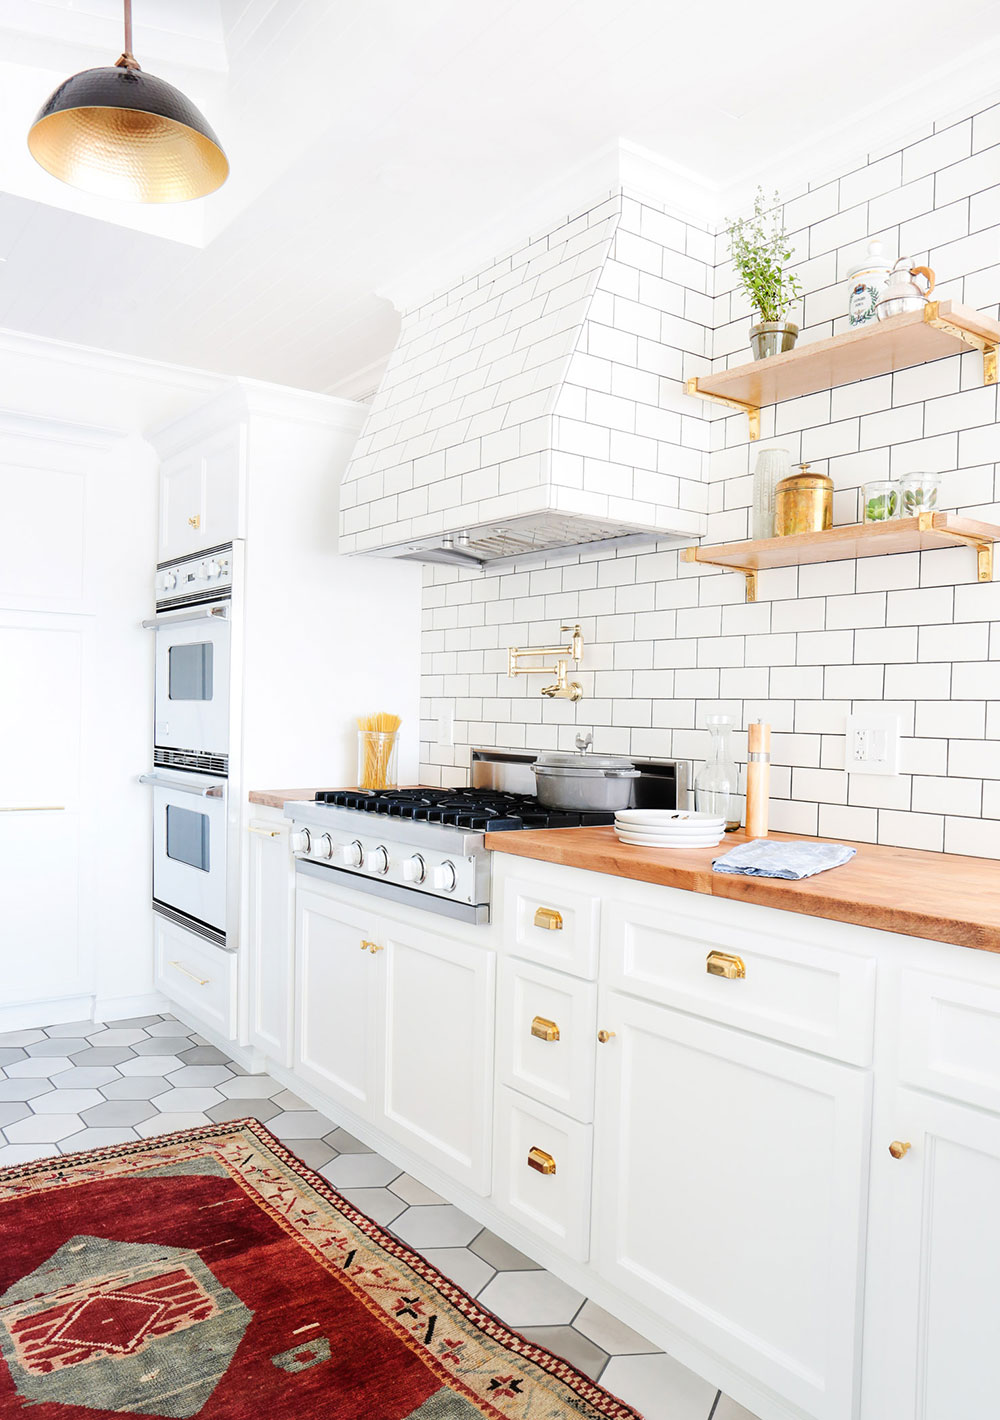 Designers Cringe Every Time They See This Kitchen Decorating Mistake -  by GABRIELLE SAVOIEThrough years of honing their craft, interior designers come to know every nook and cranny that makes a room special. Especially in kitchens, where most of the